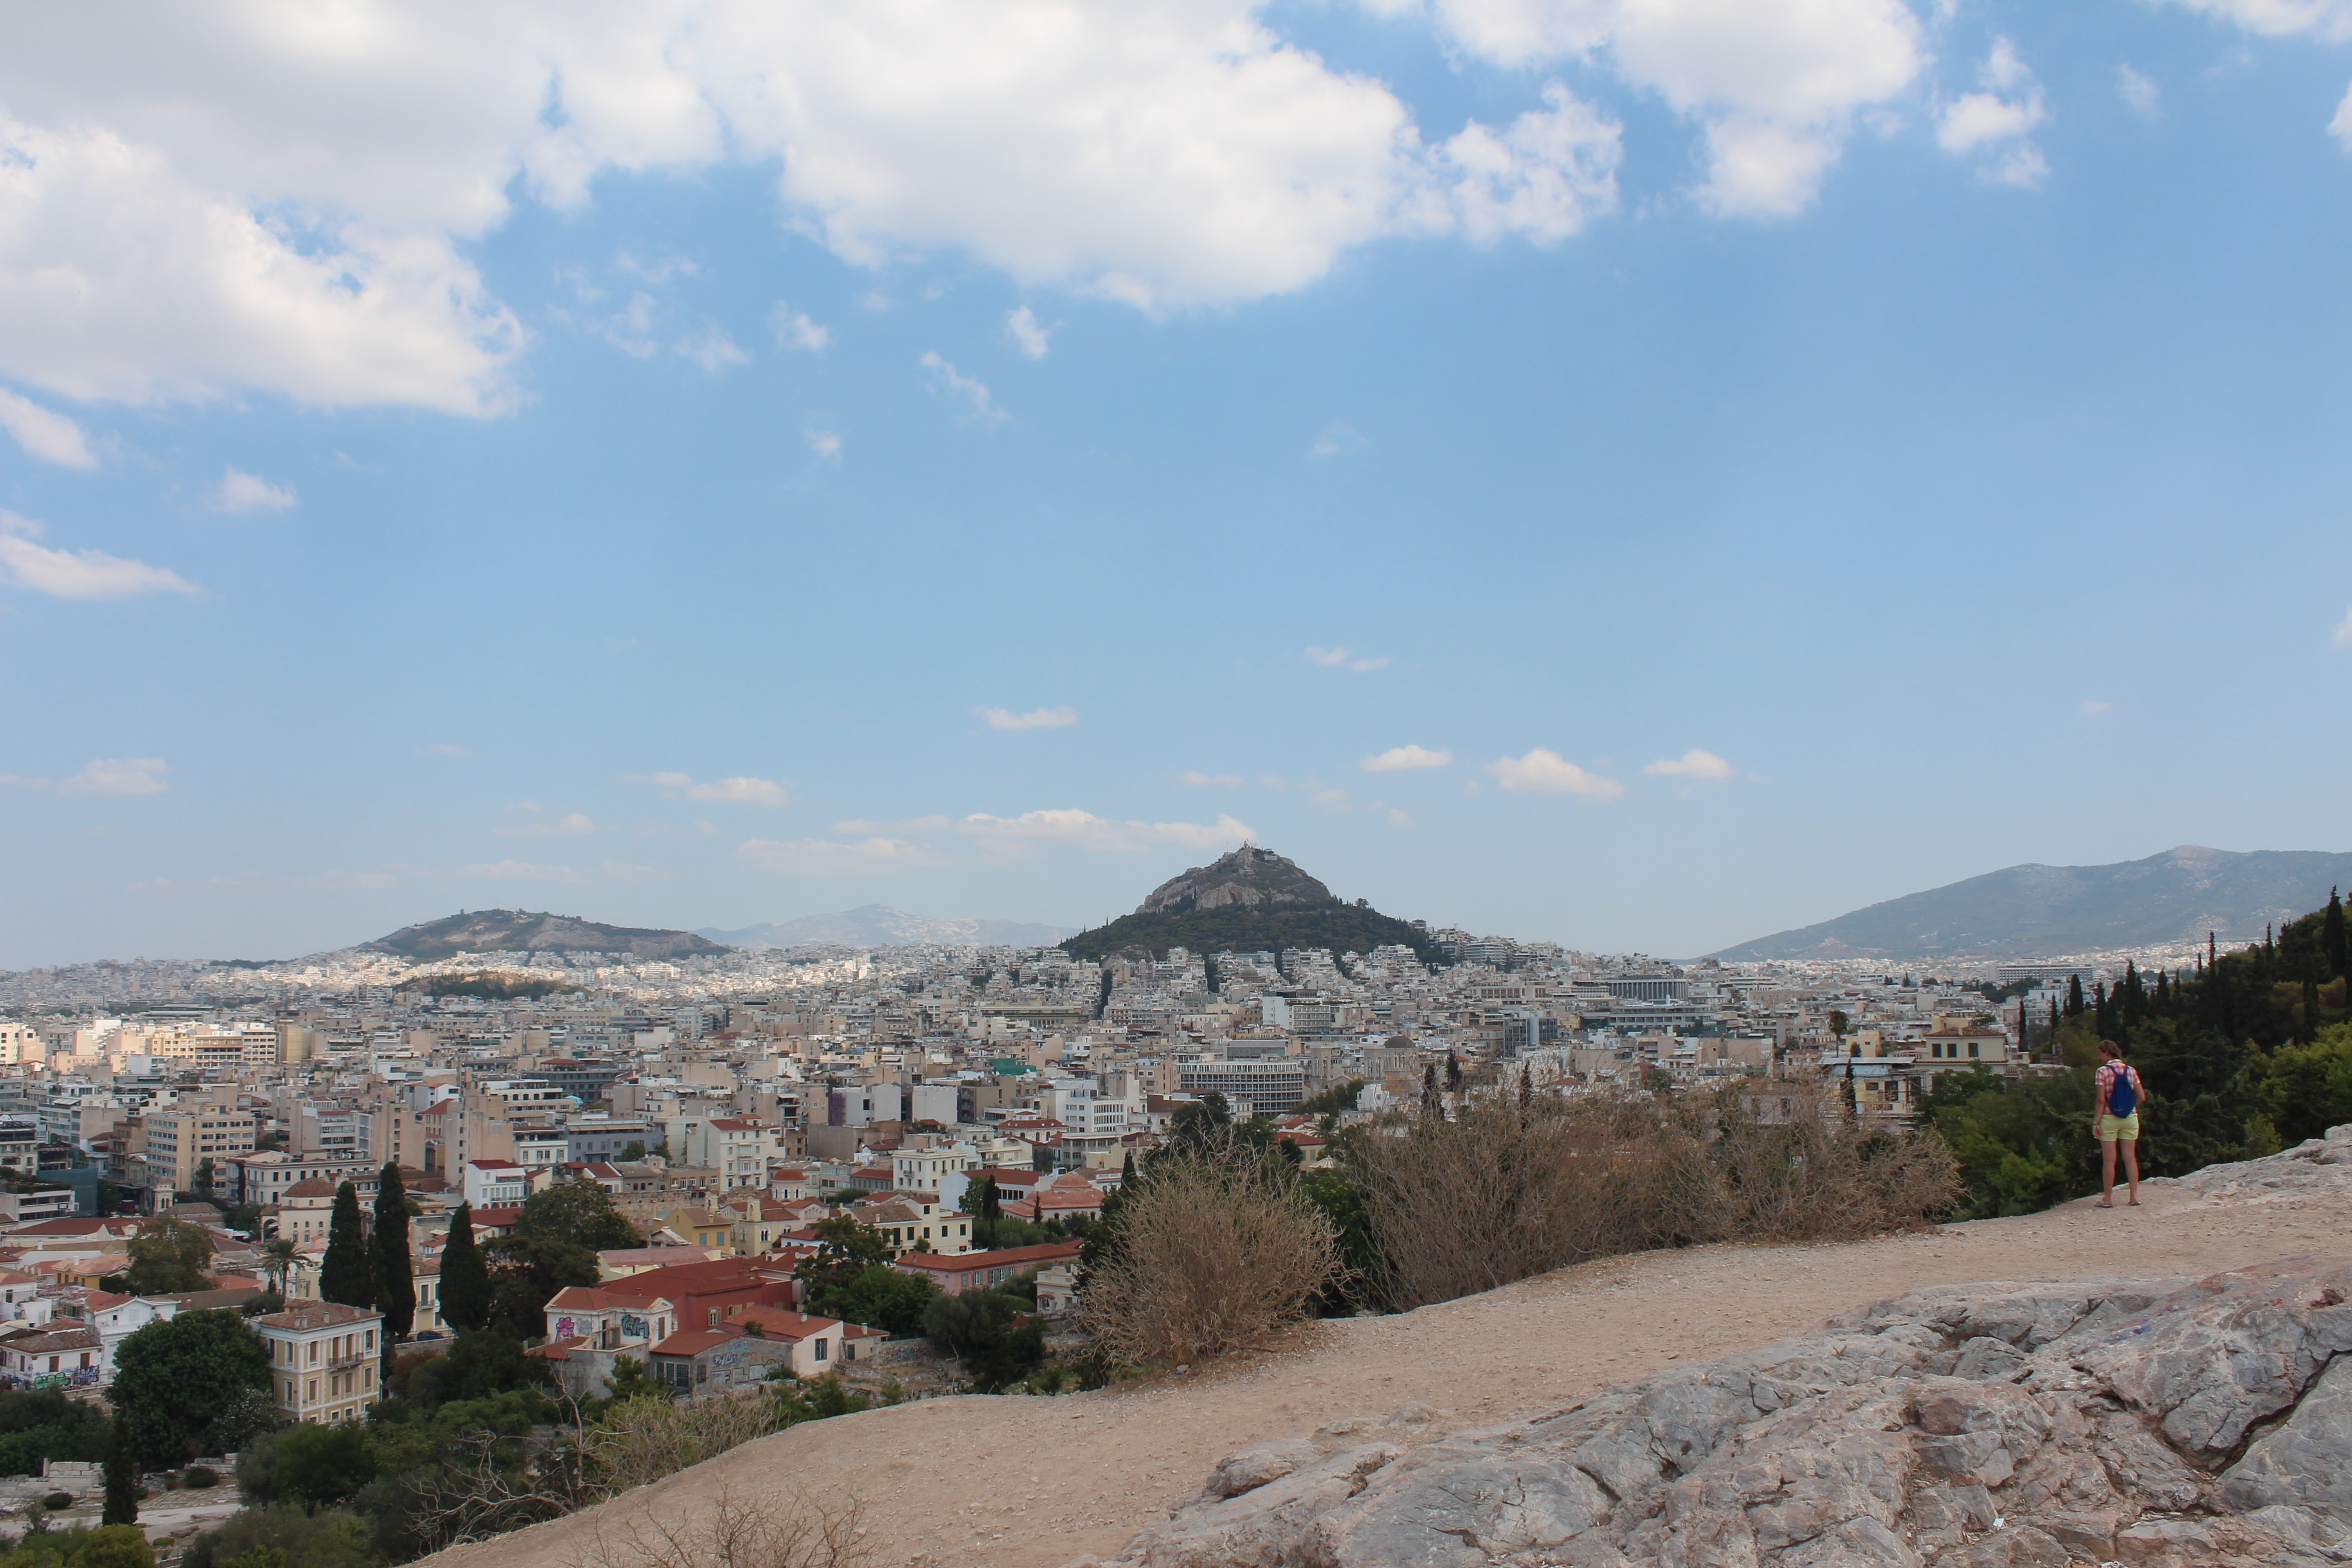 The skyline of Athens, Greece